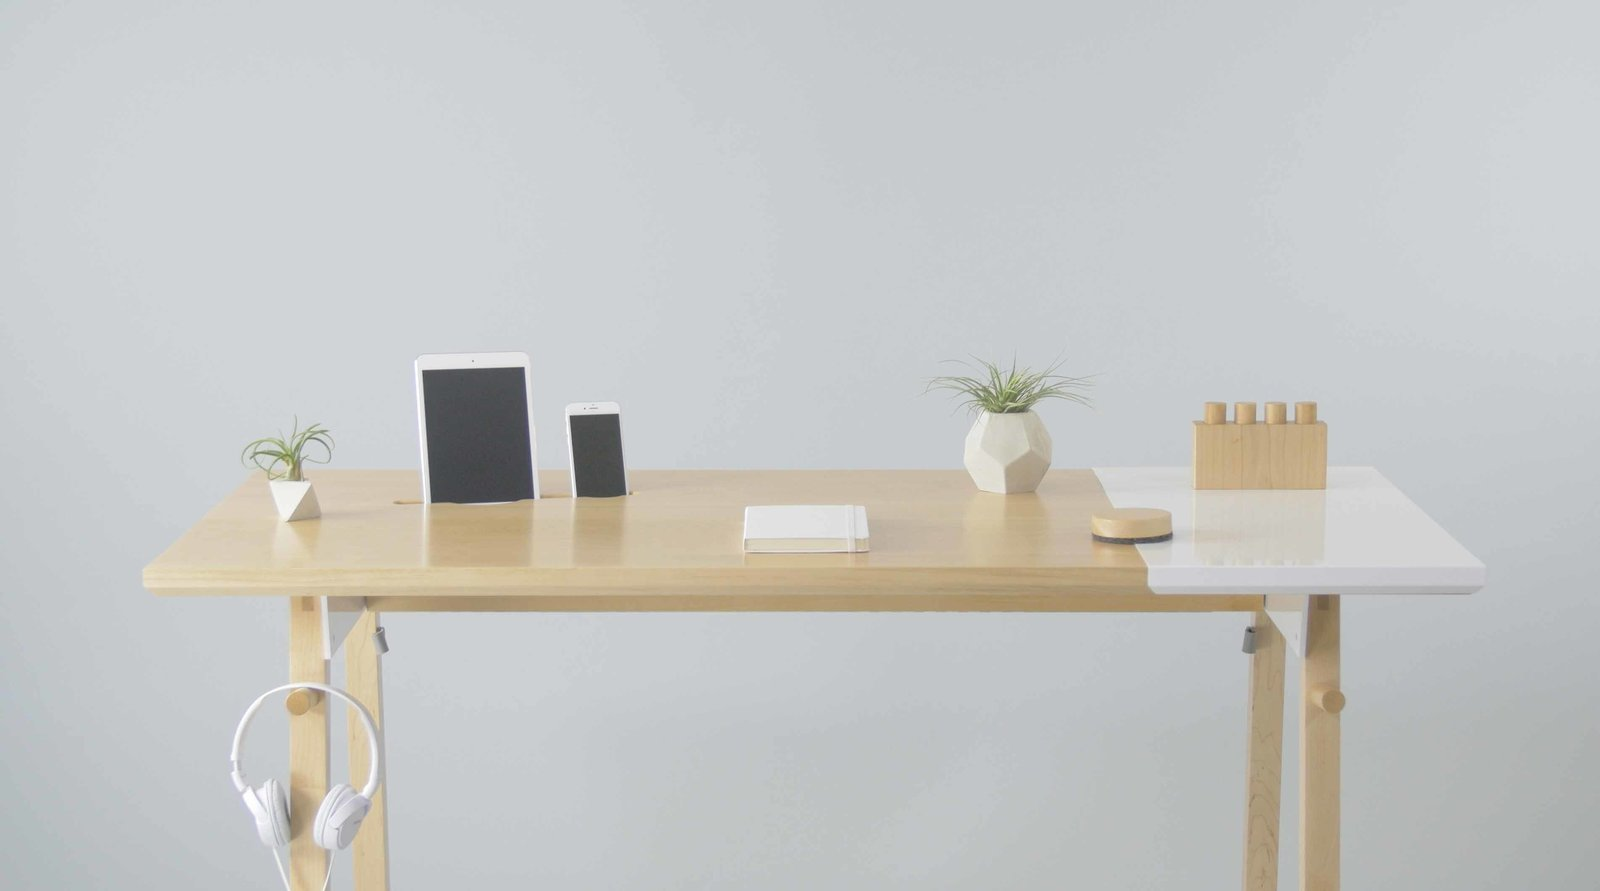 """The complete line of WorkShop products, including limited edition items, is available now. New tools for work and brainstorming will periodically refresh the collection.  Search """"11plus world desk clock"""" from A Handpicked Selection of Office Tools for Cutting Clutter and Jumpstarting Creativity"""